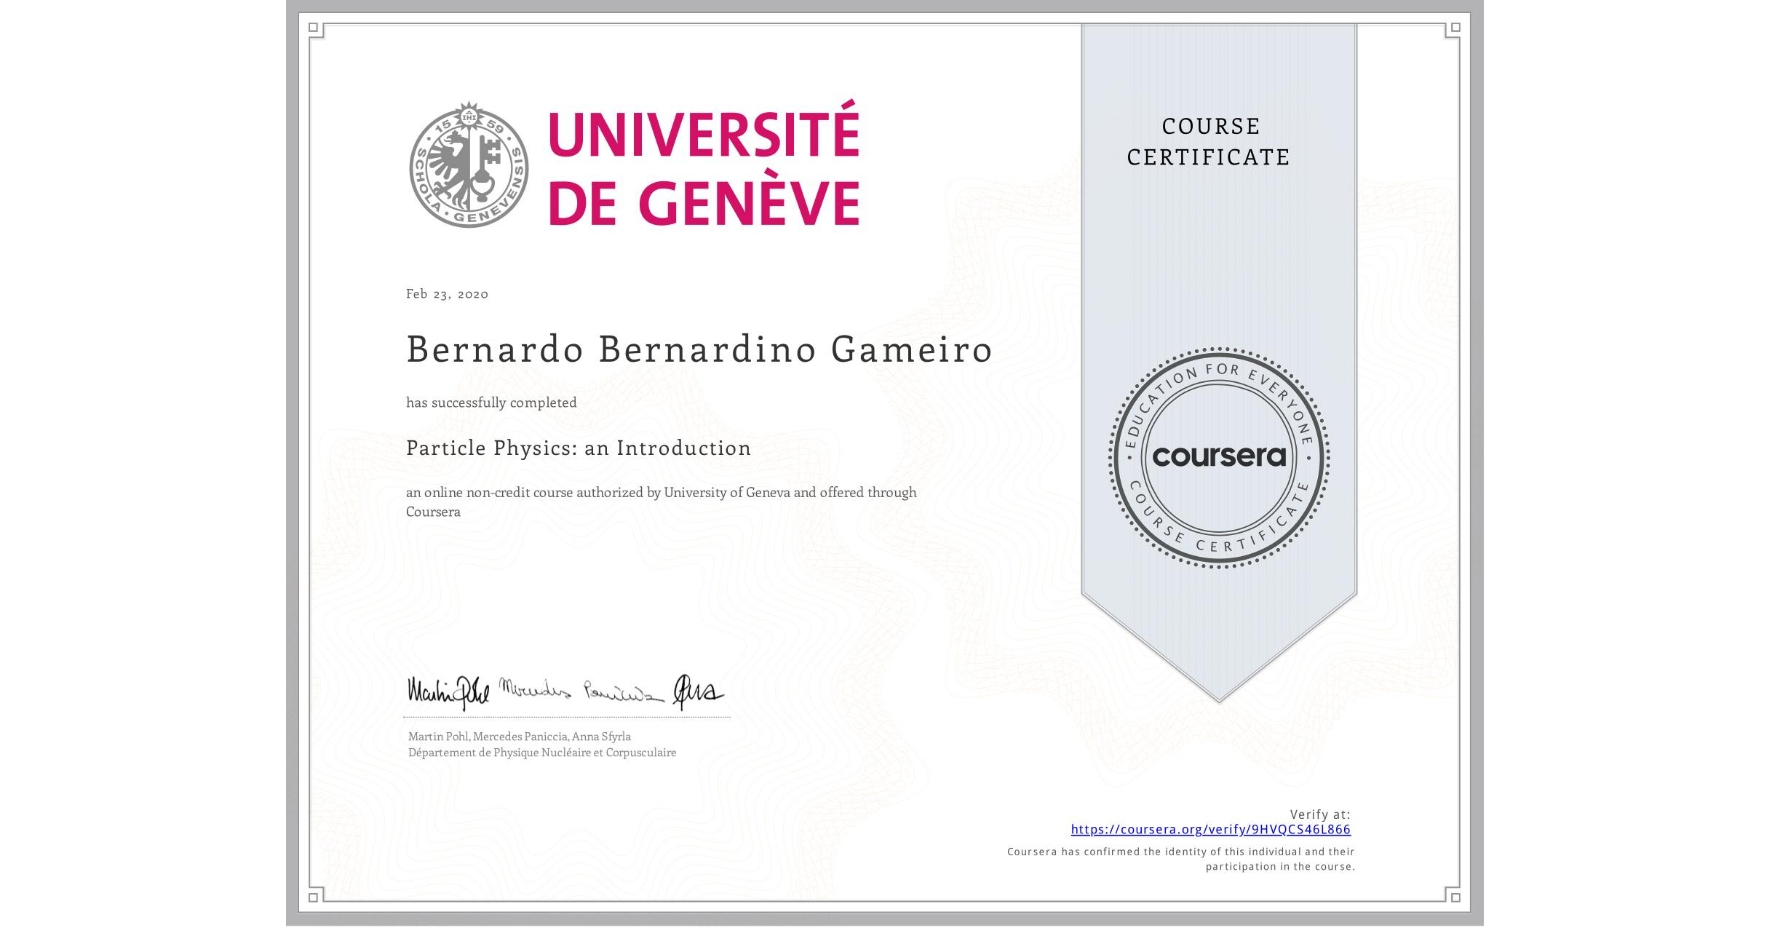 View certificate for Bernardo Bernardino Gameiro, Particle Physics: an Introduction, an online non-credit course authorized by University of Geneva and offered through Coursera